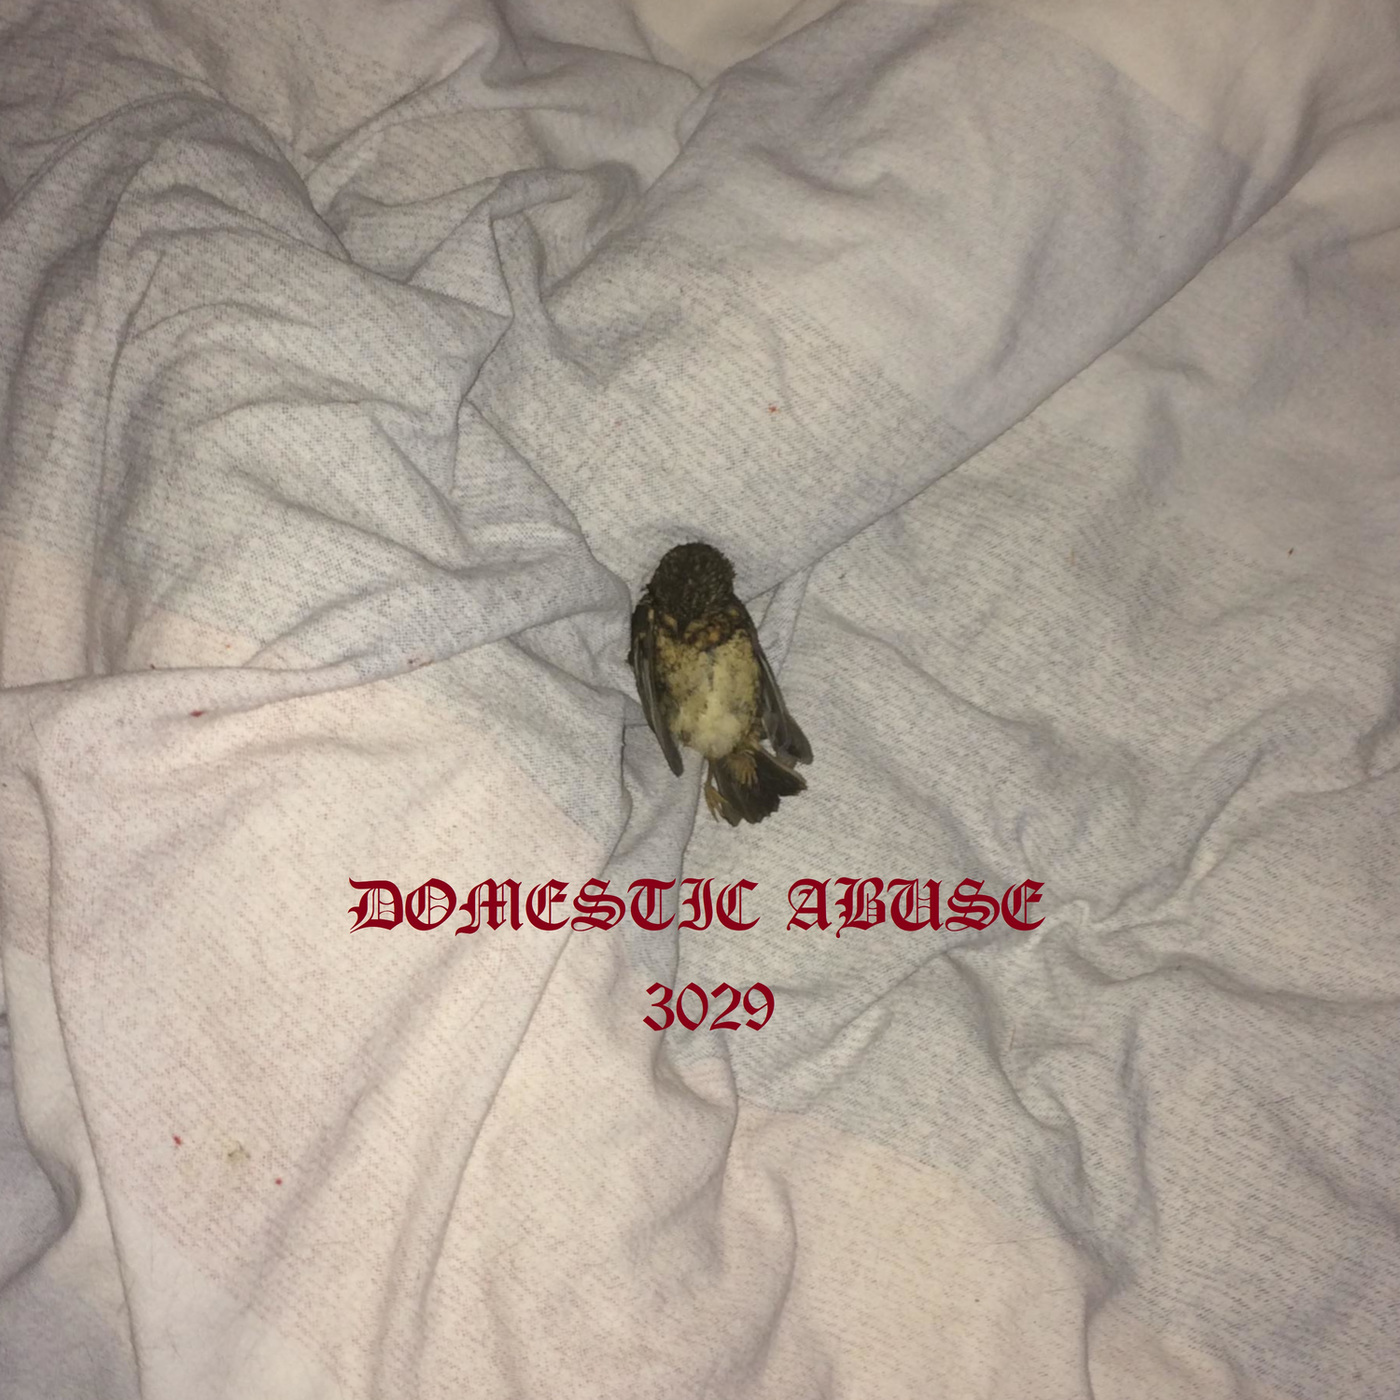 Atena - Domestic Abuse [single] (2019)